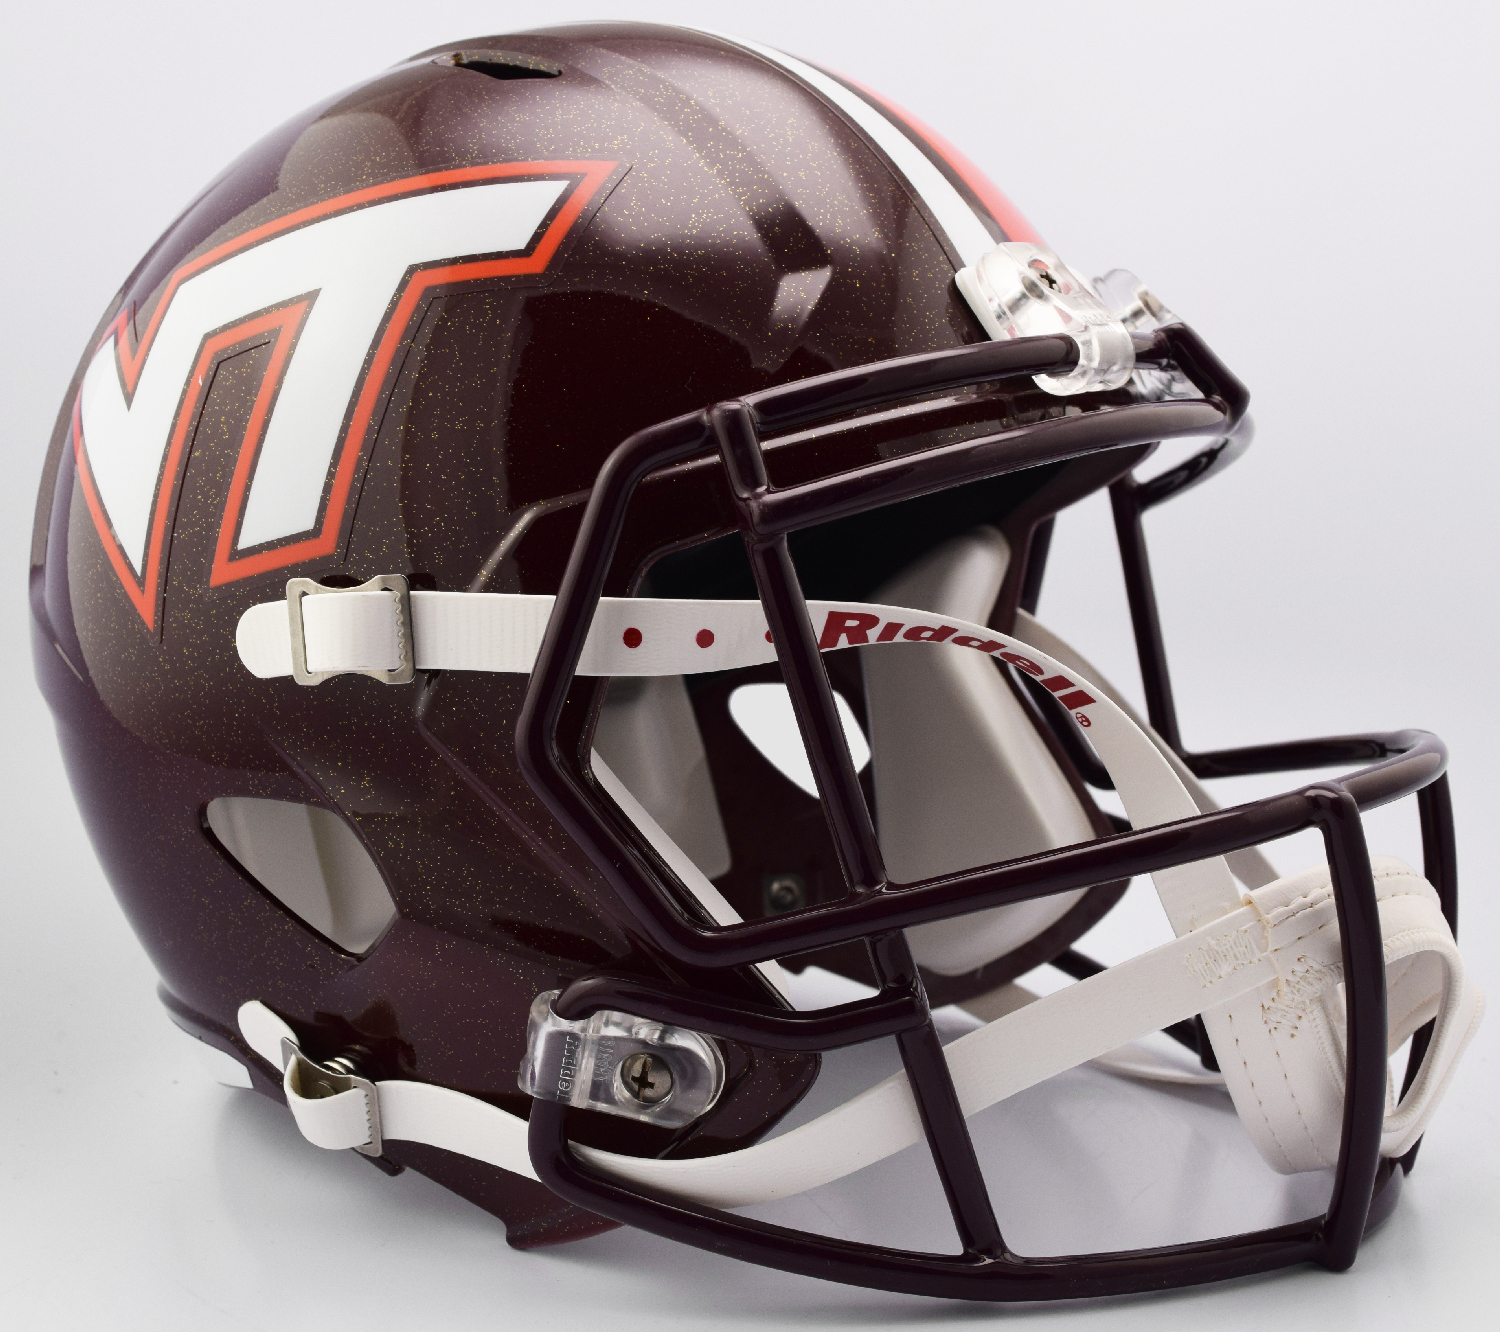 Virginia Tech Hokies Speed Replica Football Helmet